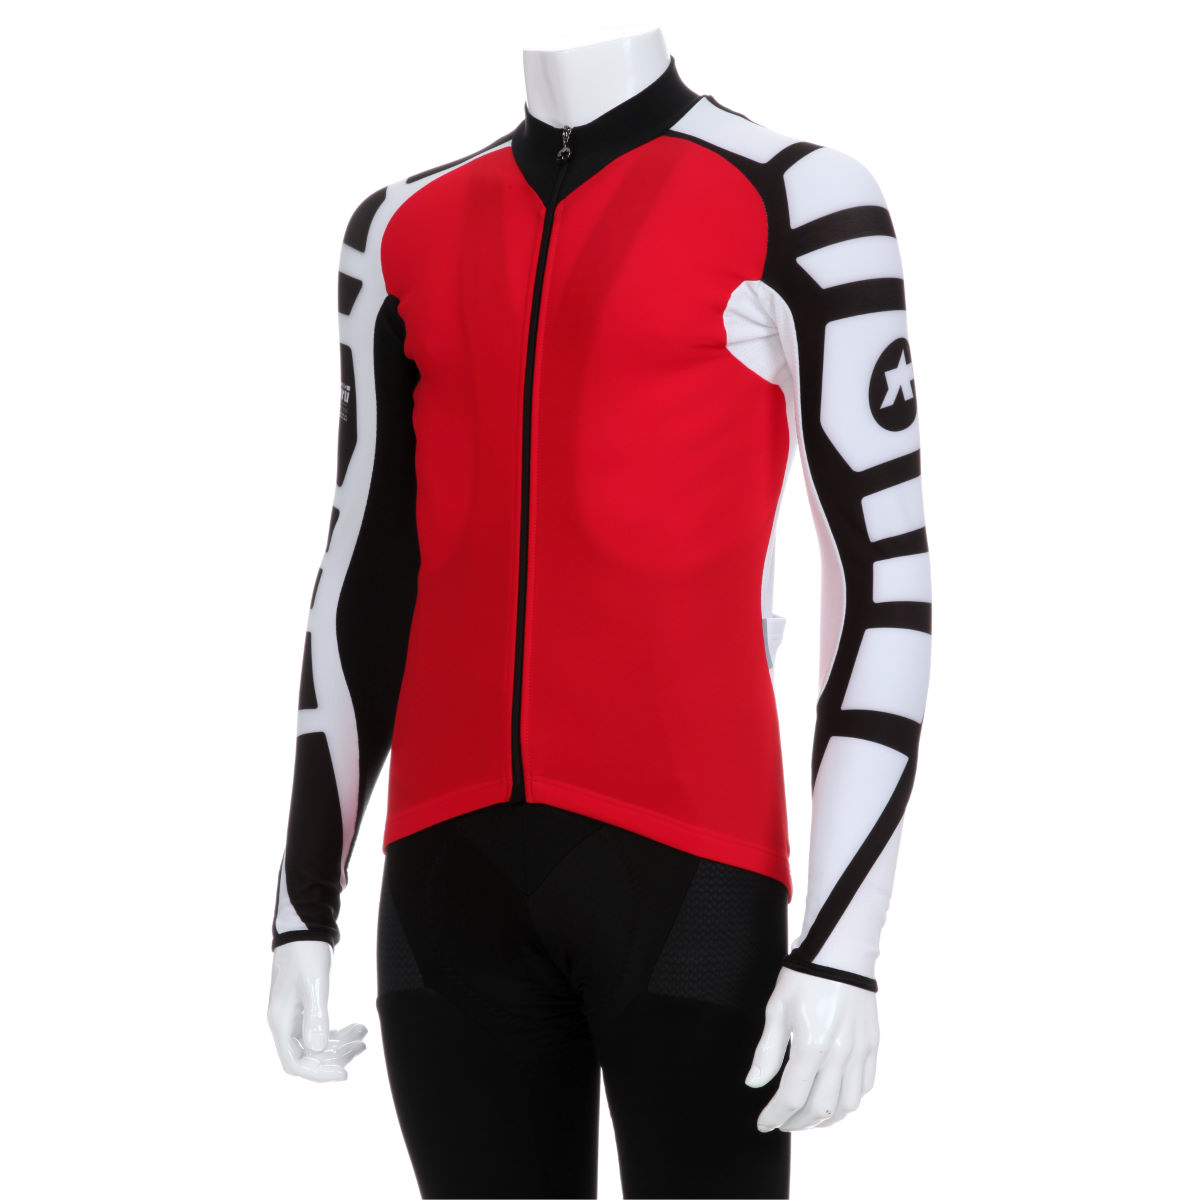 Veste isolante Assos ij.tiBuru - XL Swiss Red Coupe-vents vélo